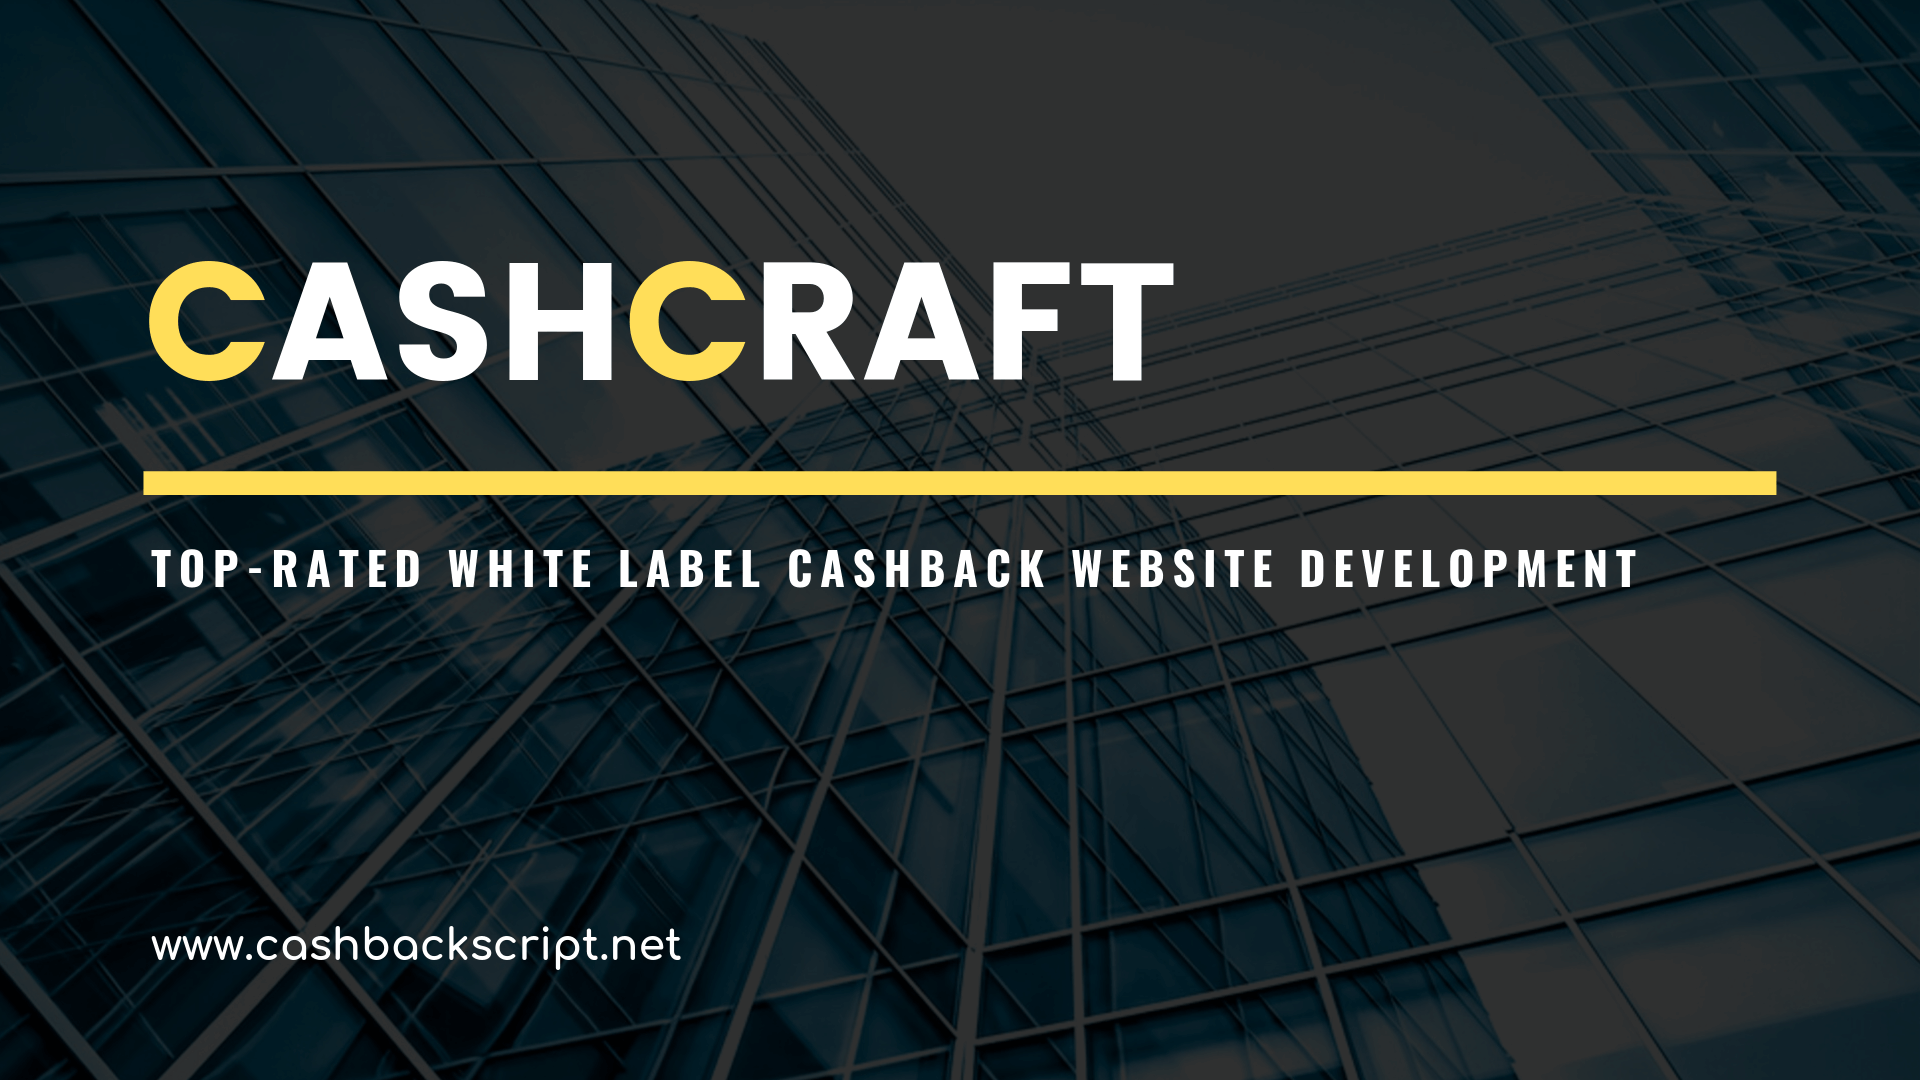 White Label Cashback Website Development Company